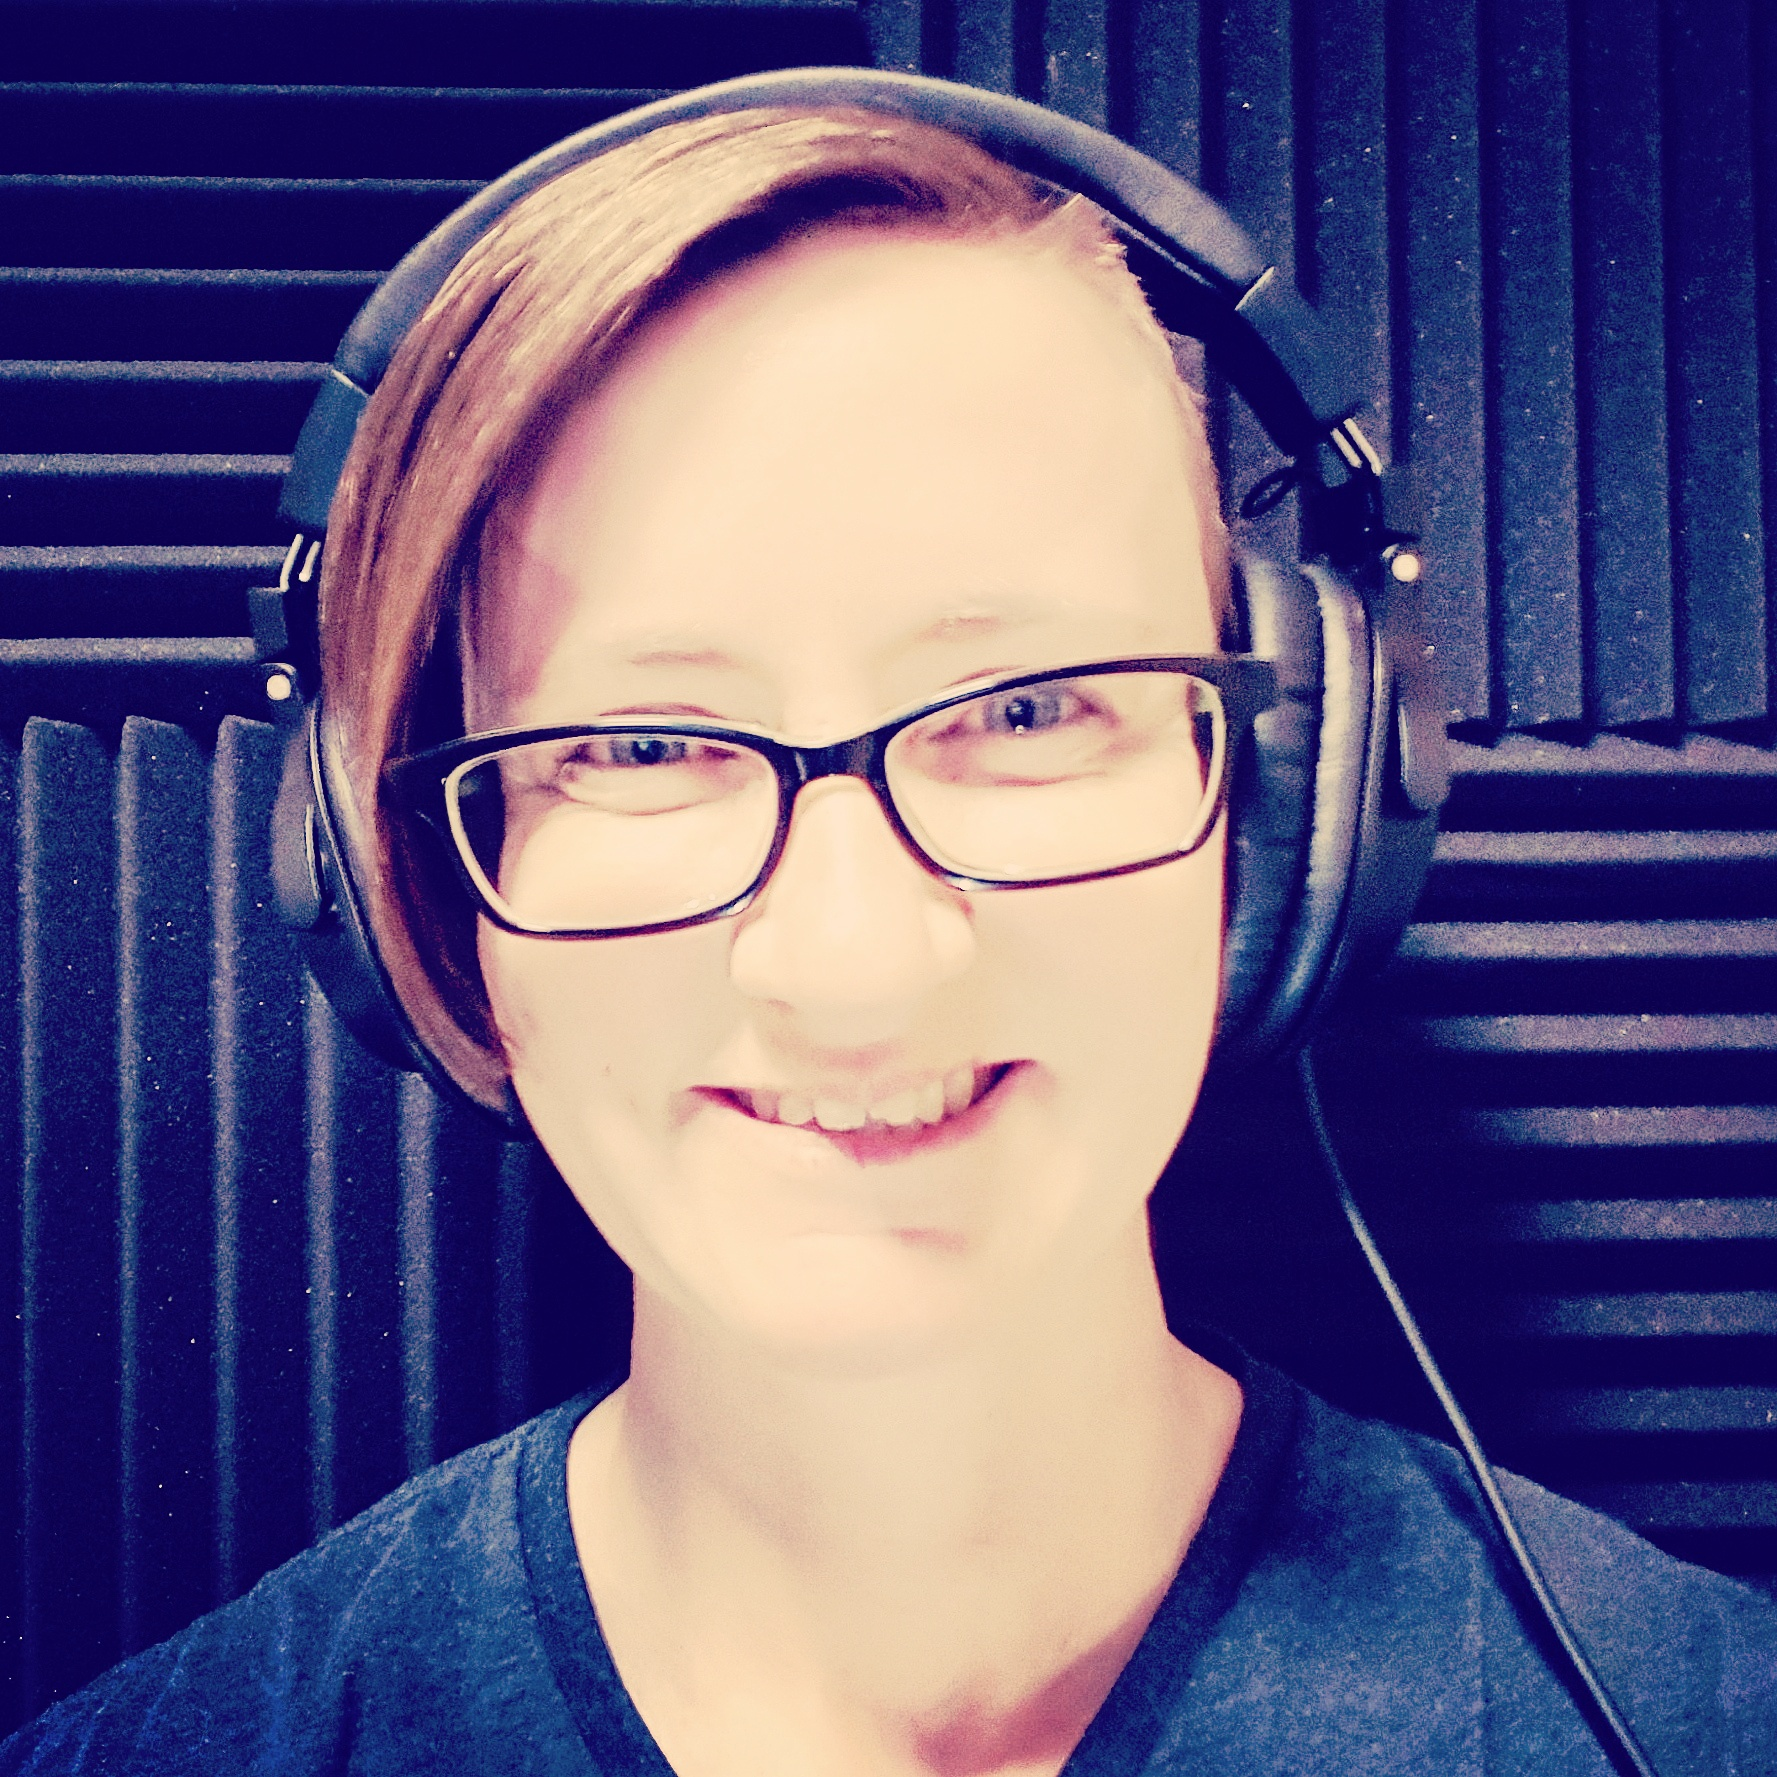 The Audio Flow Audiobook Interview - Talking about lesfic, audiobooks, and my current release in particular, Ghost of a Chance by Natalie Vivien - and having a veritable TON of fun while doing it!